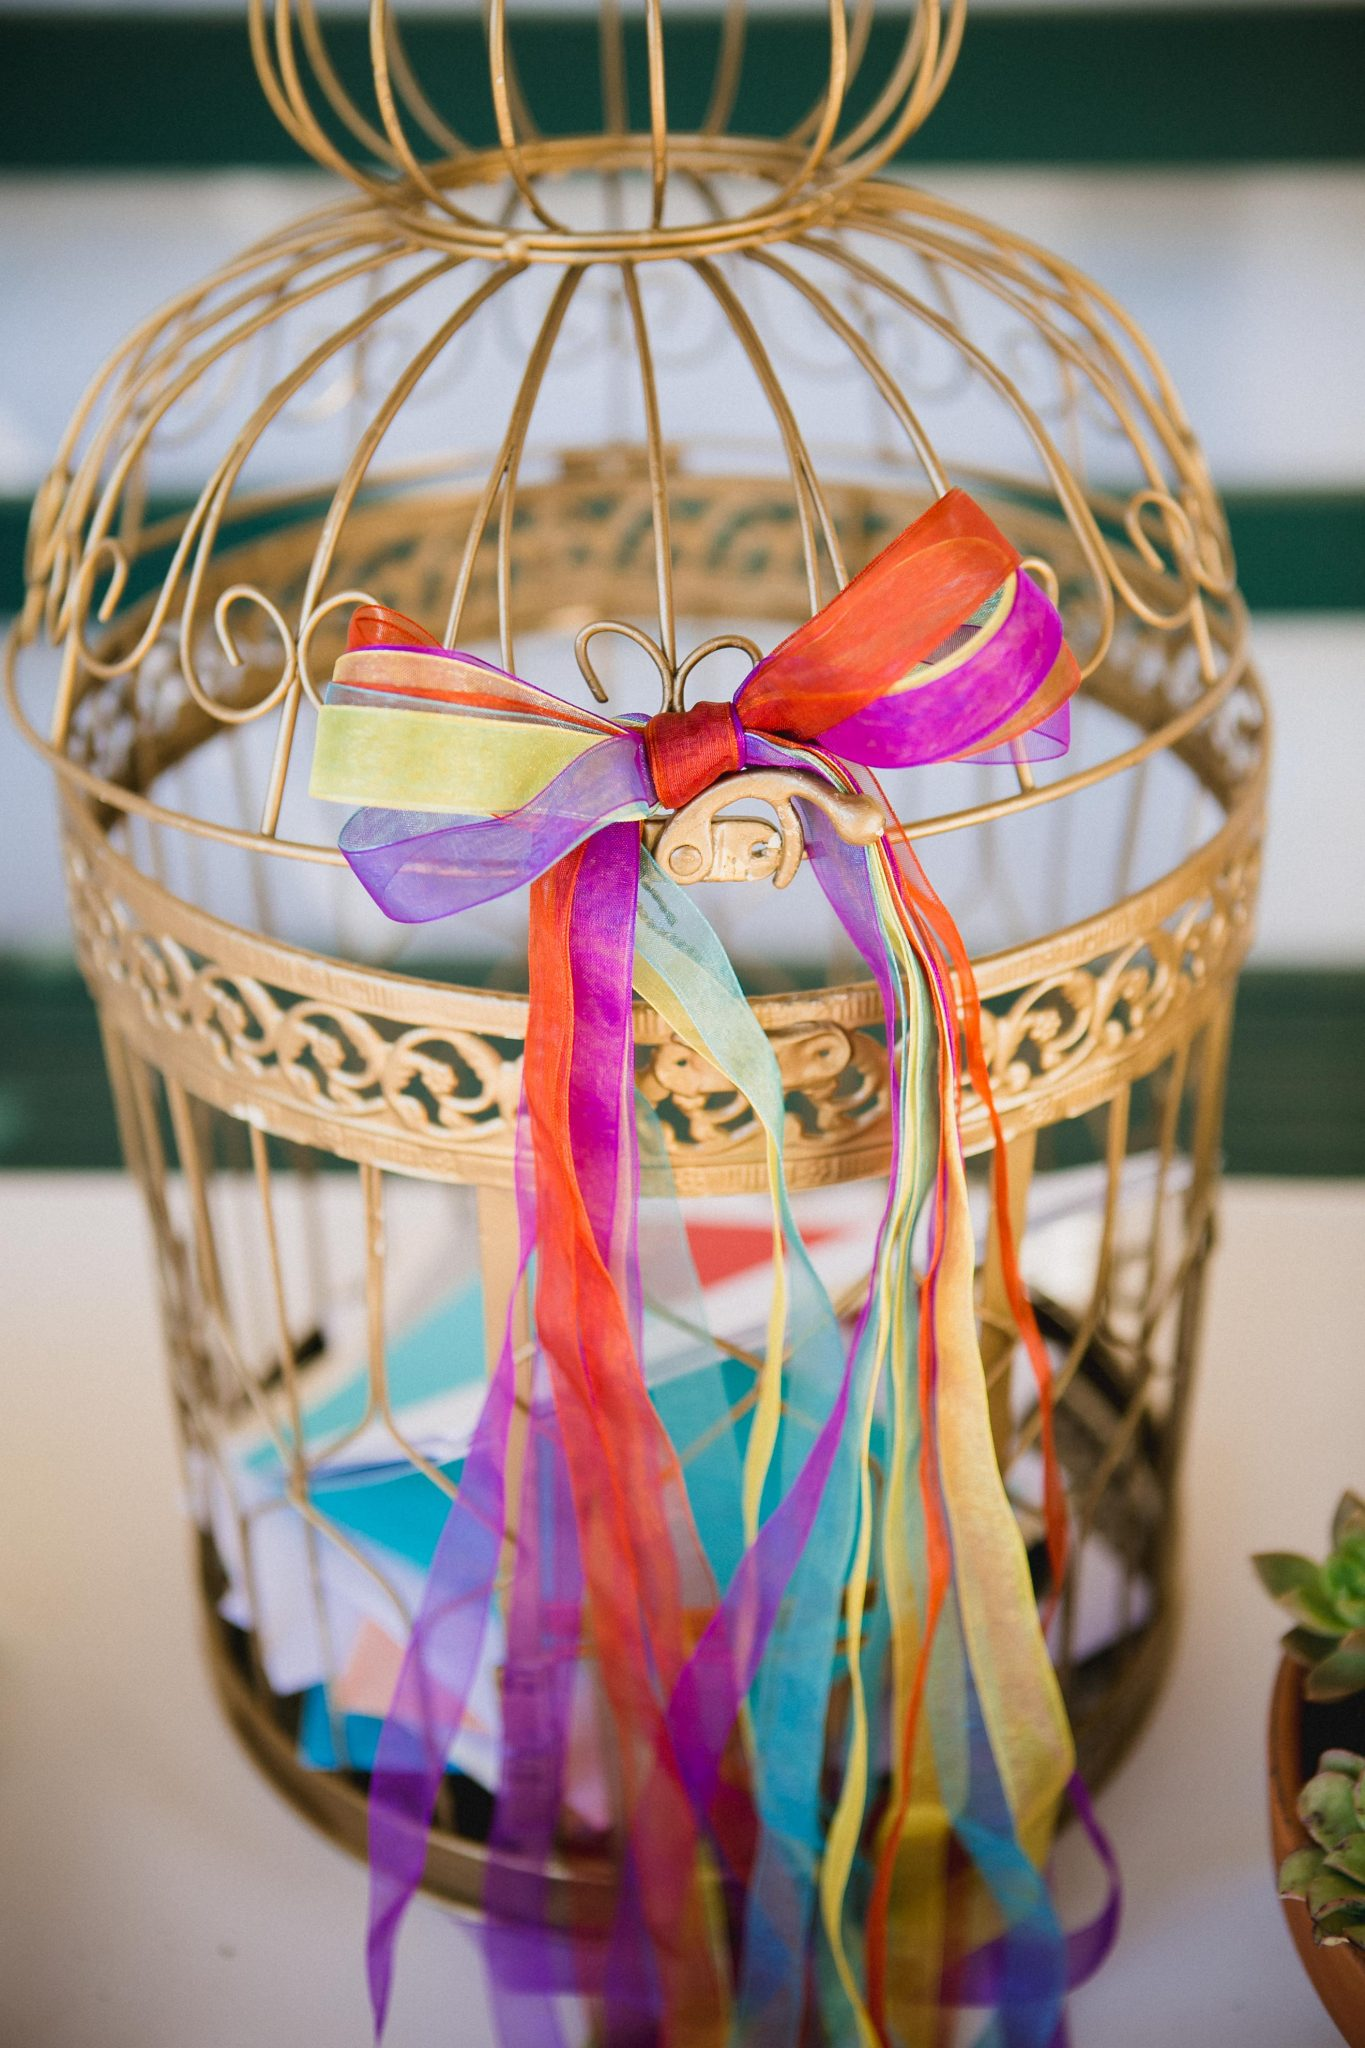 Gold bird cage decoration for guests to place wedding cards in